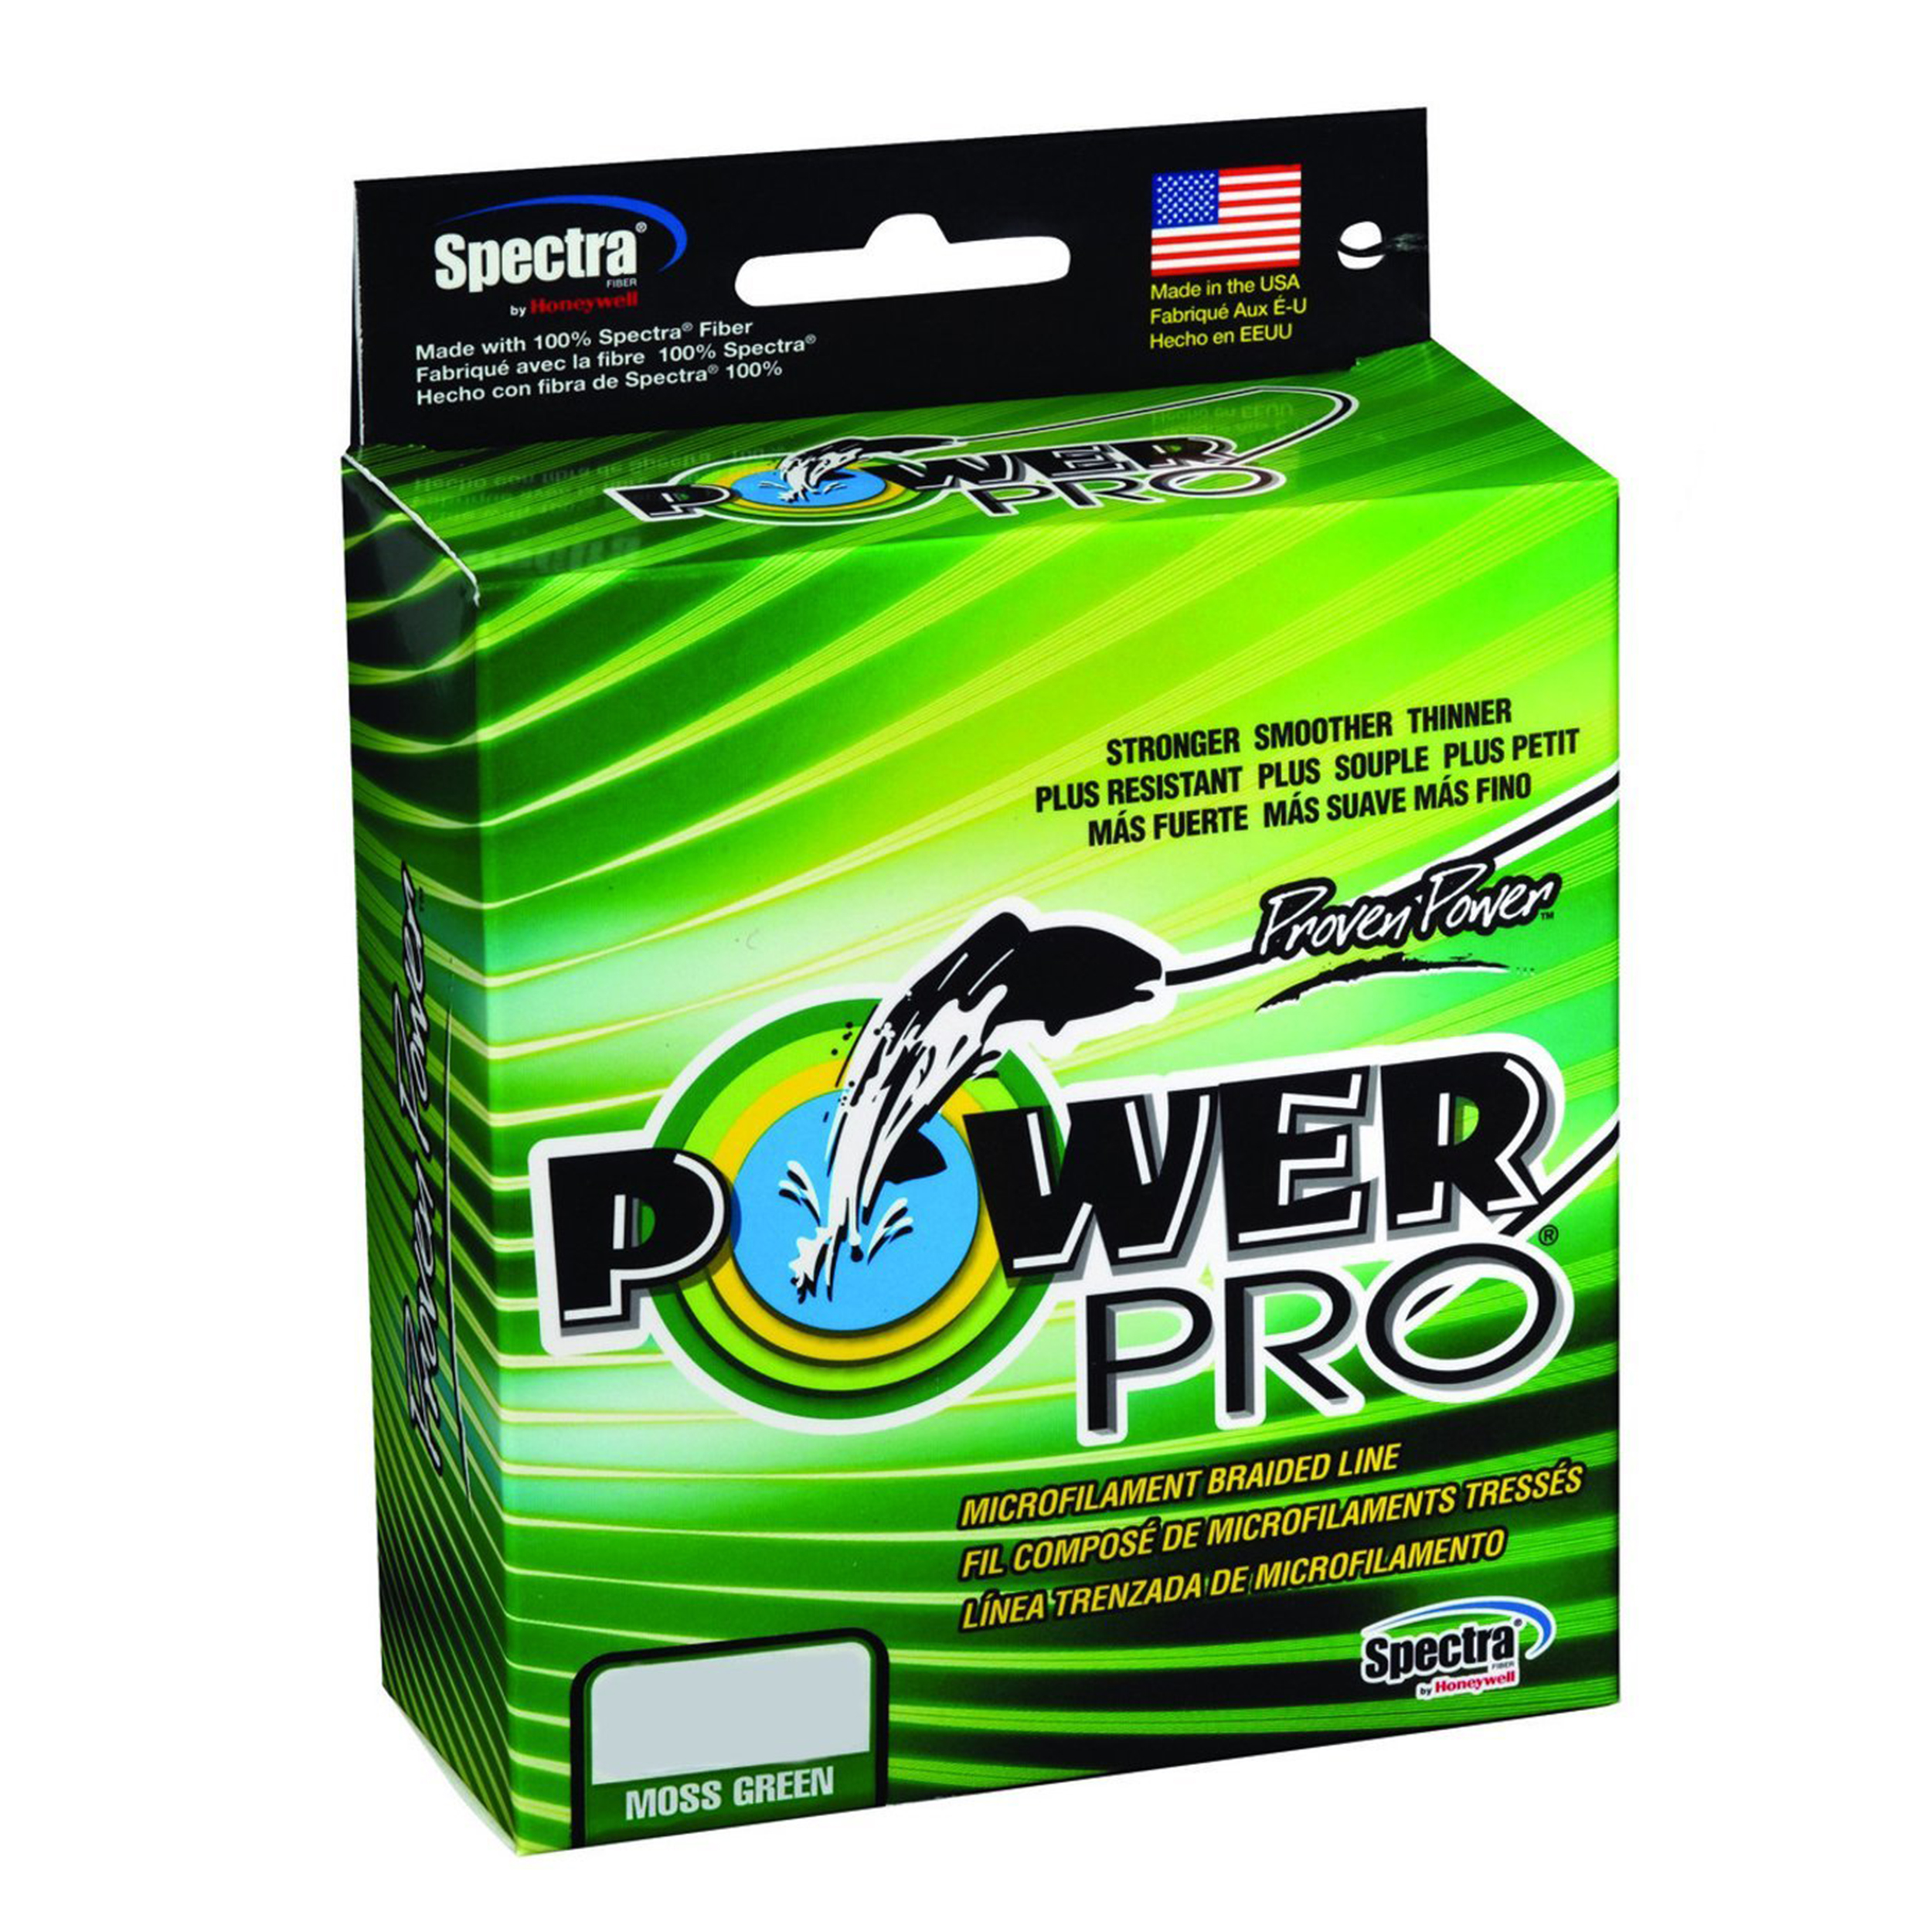 "Power Pro PowerPro Braided Line 150 Yards. 50 lbs Tested, 0.014"" Diameter, Moss Green"